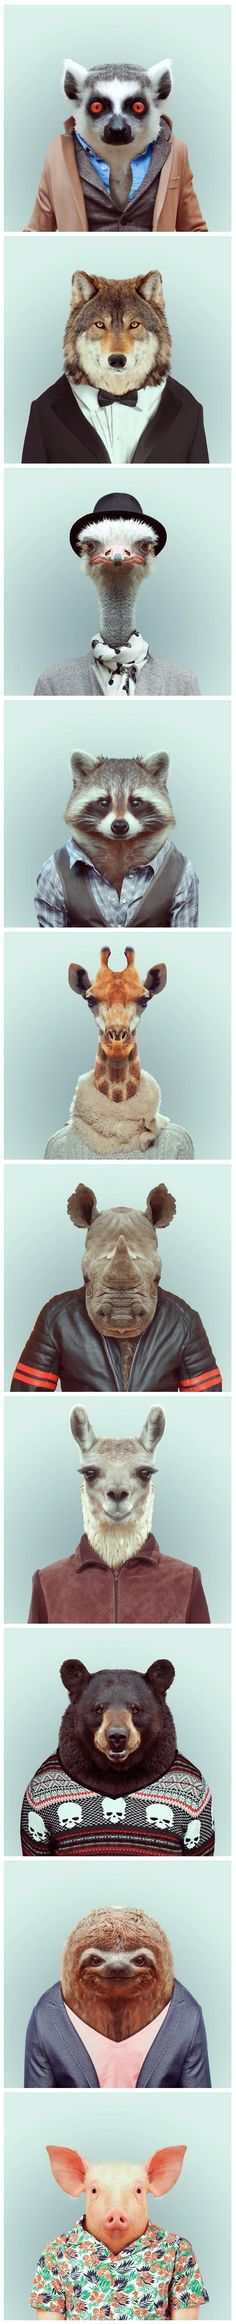 Funny pictures about Funny portraits of animals dressed like humans. Oh, and cool pics about Funny portraits of animals dressed like humans. Also, Funny portraits of animals dressed like humans. Funny Animals, Cute Animals, Photocollage, Tier Fotos, Animal Heads, Pet Clothes, Animals In Clothes, Fancy Clothes, Pet Portraits